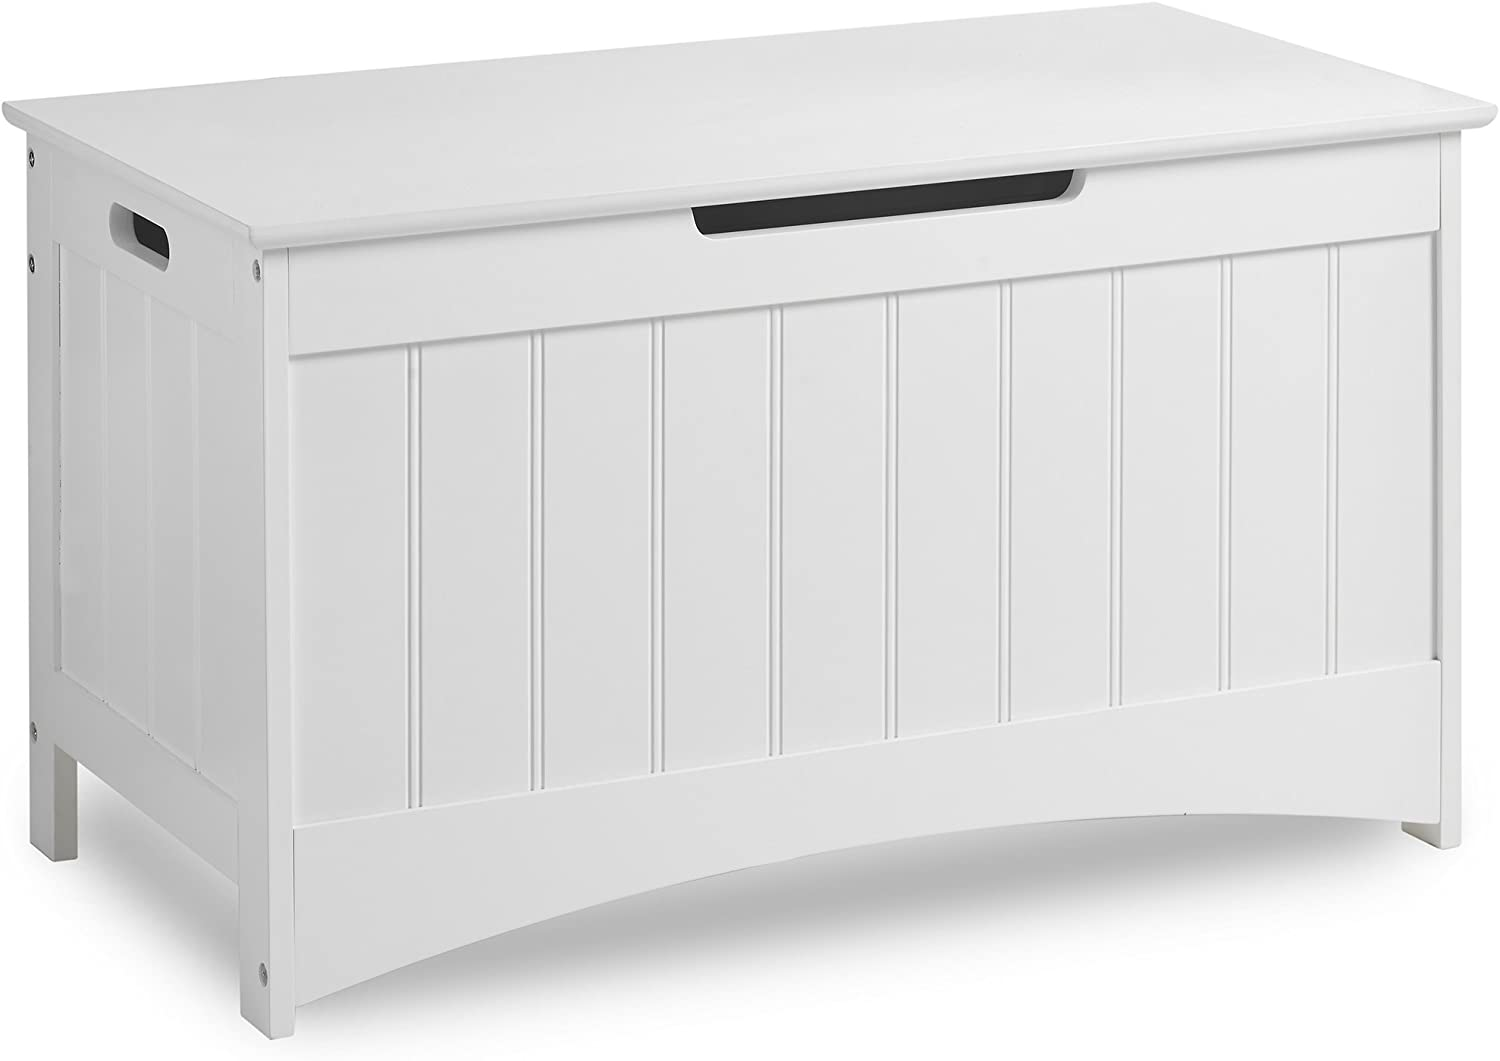 VonHaus Colonial Storage Box  Classic White Storage Chest with easyopen operation  Bedroom Furniture